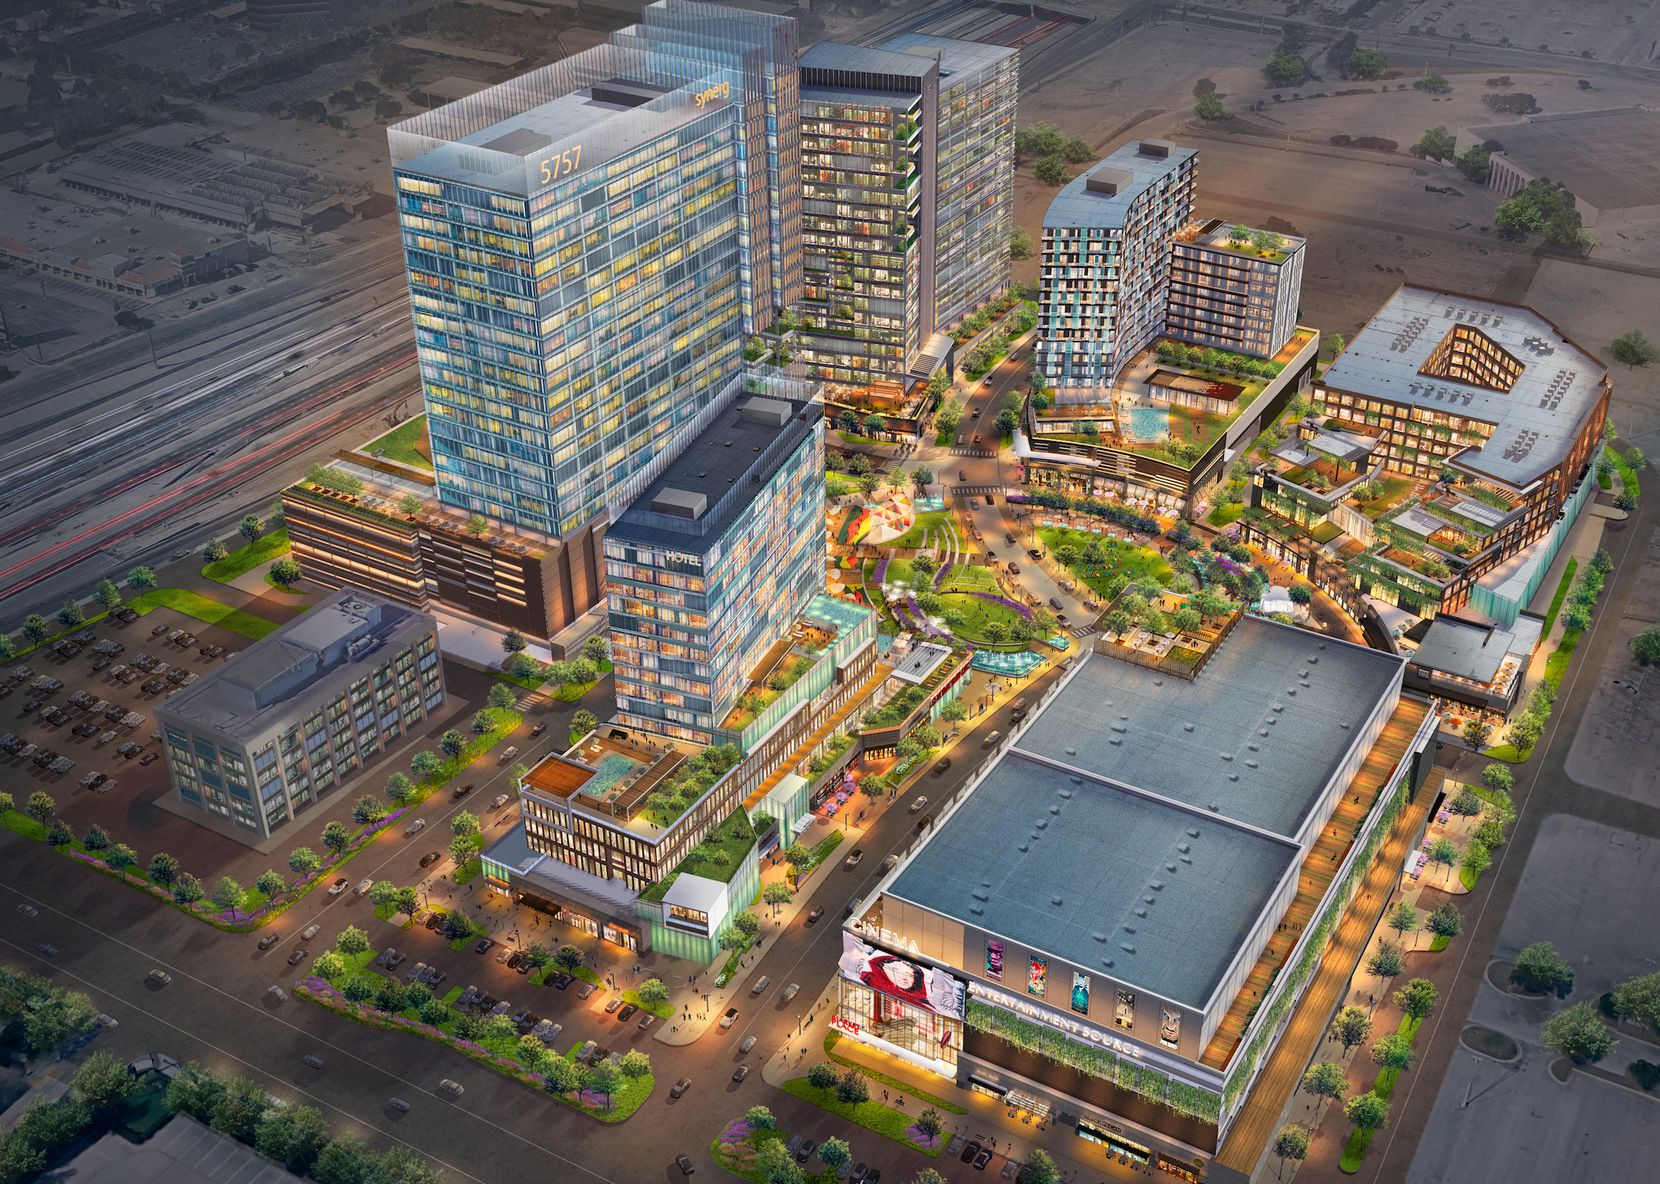 The 23-acre mixed-use project is part of the 40-block Dallas Midtown redevelopment.